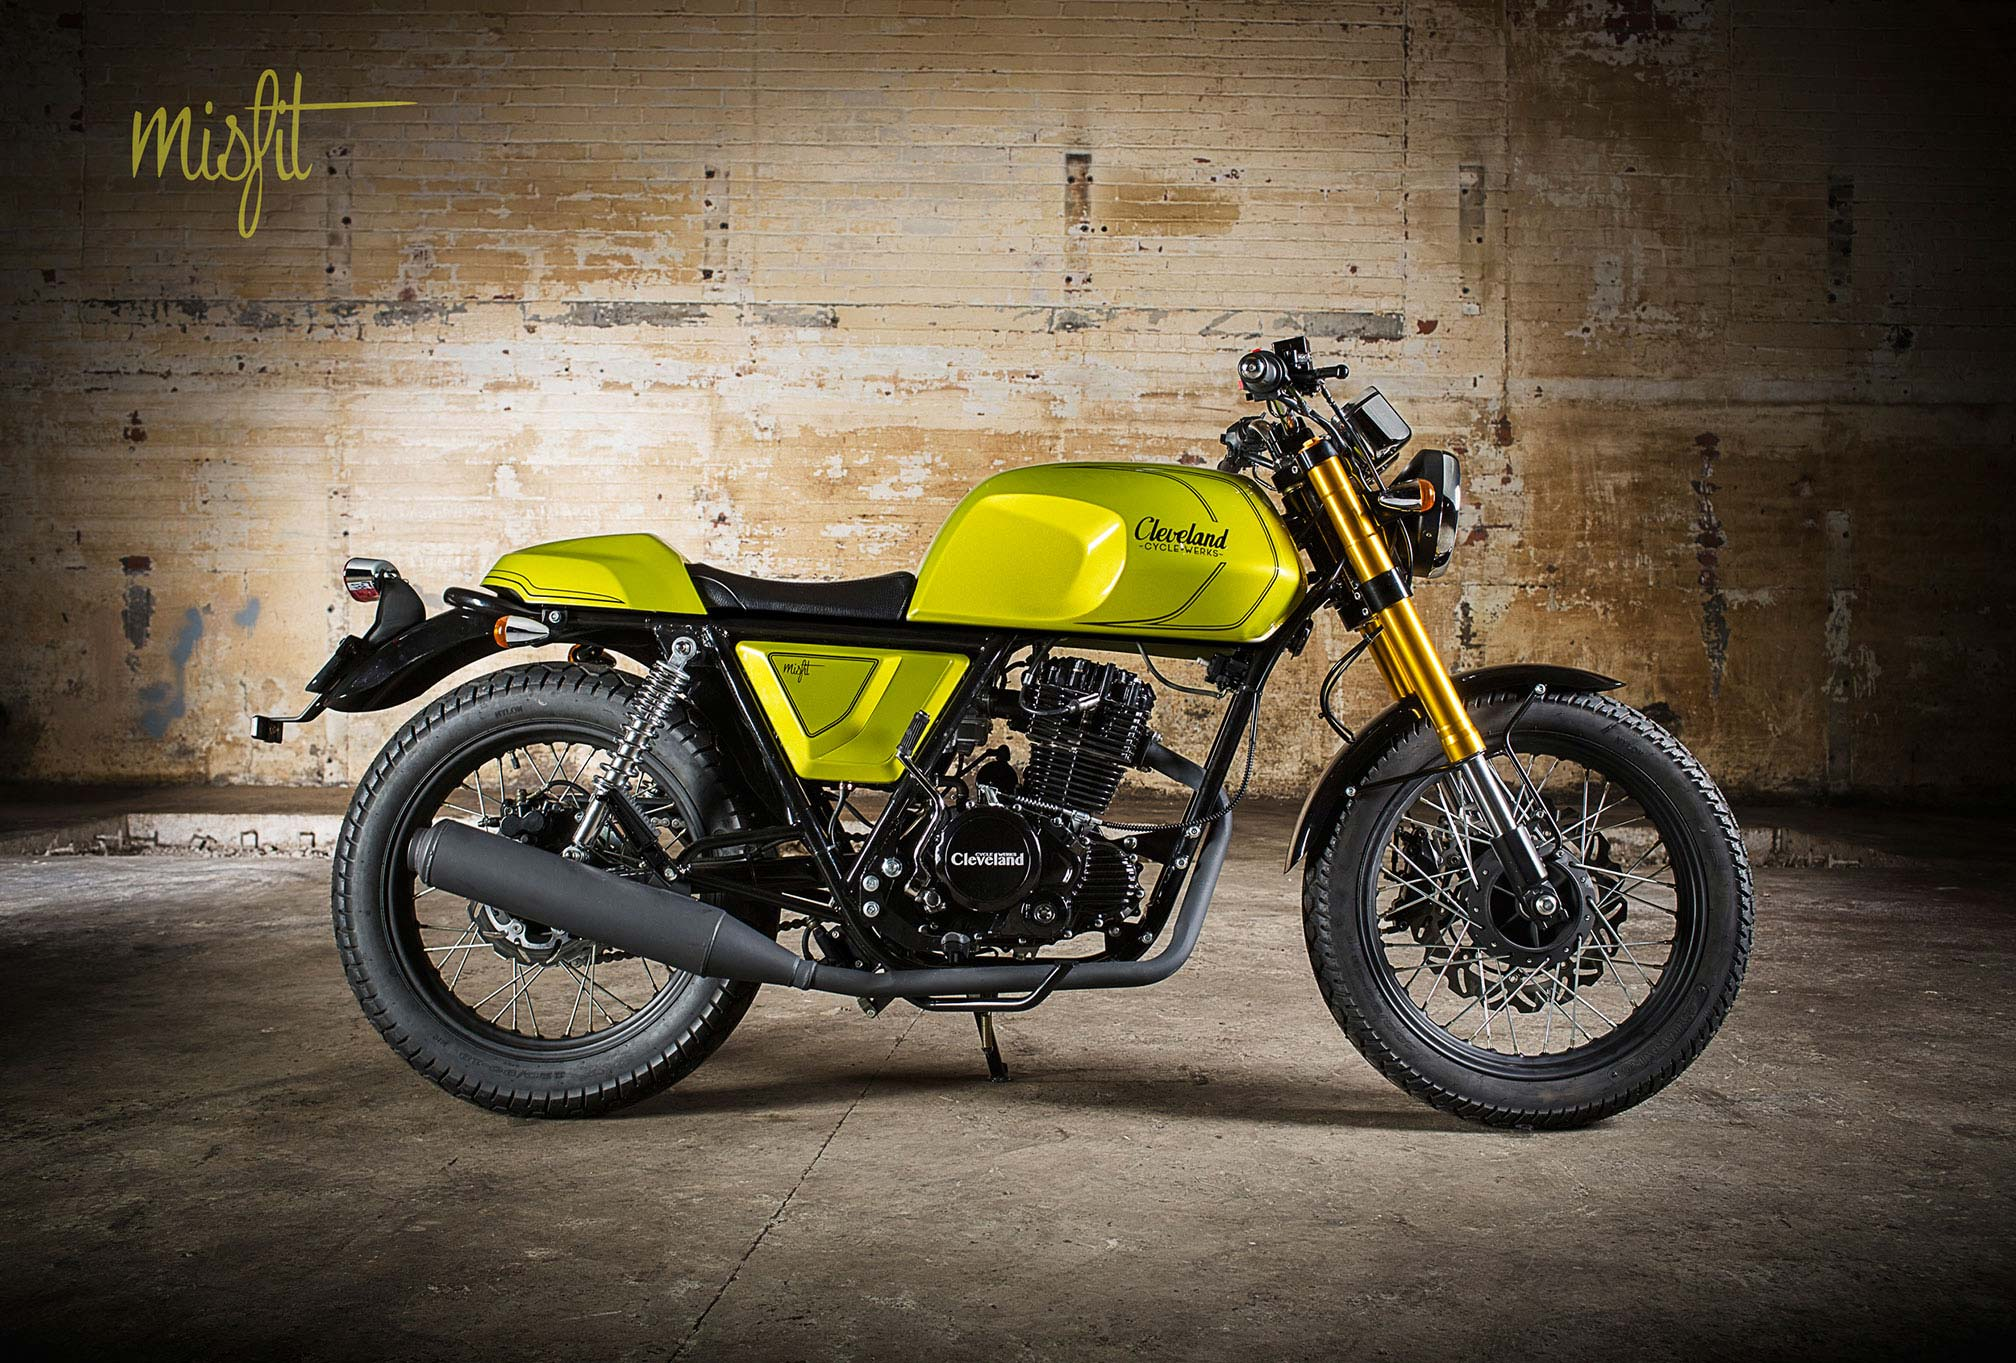 2017 cleveland cyclewerks motorcycle models at total motorcycle